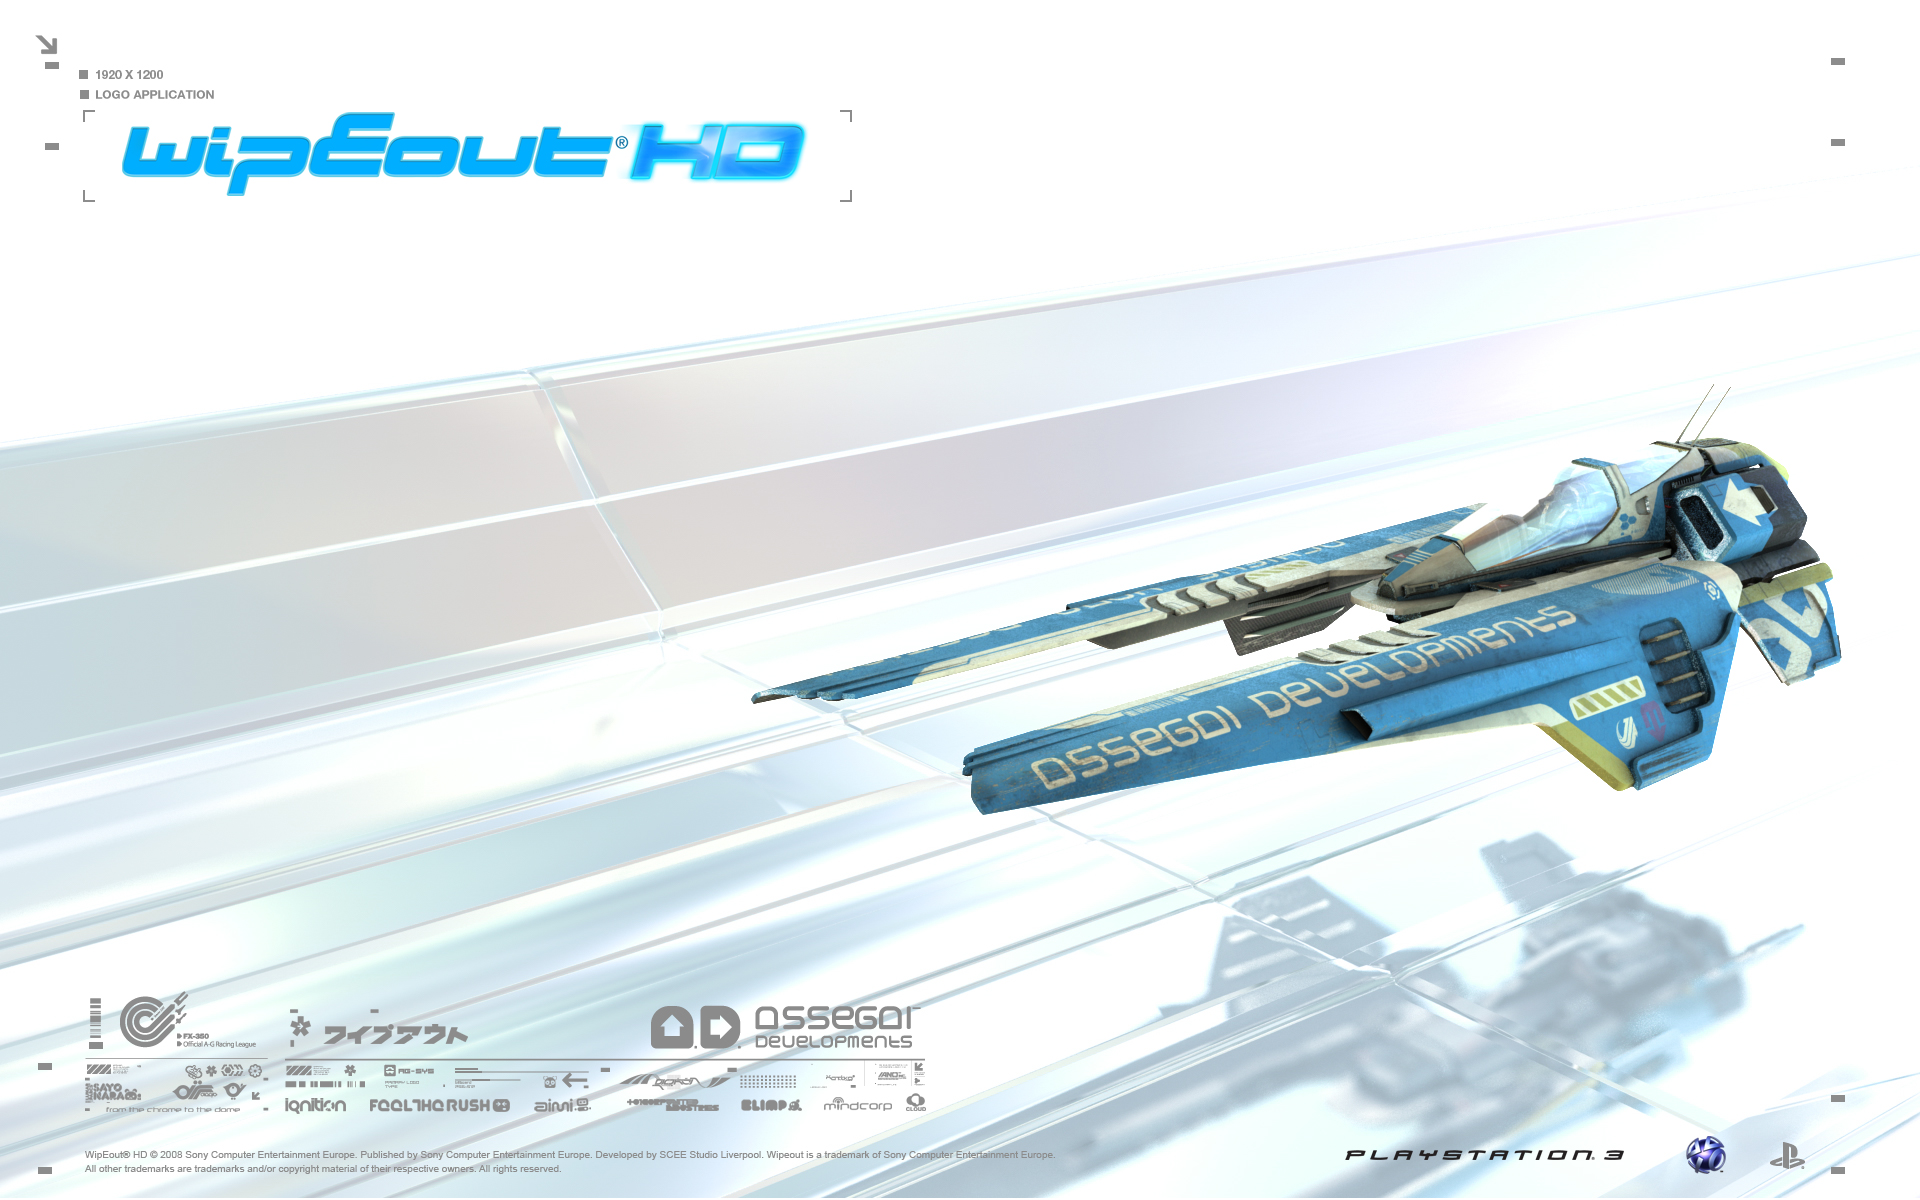 wipeout-hd-wp3-1920x1200.jpg (JPEG Image, 1920x1200 pixels) - Scaled (49%)